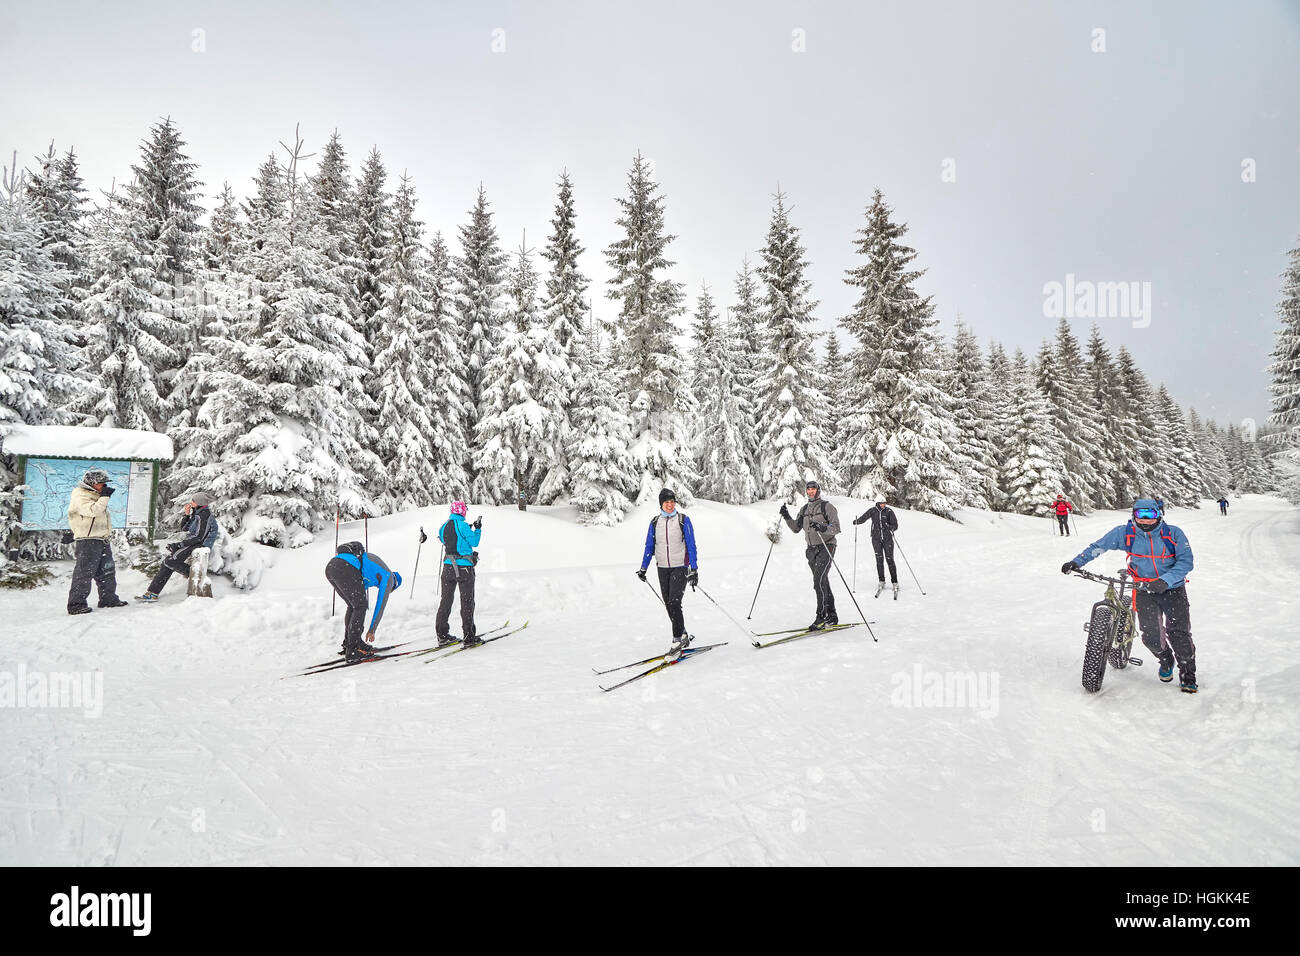 Winter sports enthusiasts resting on trails intersection. - Stock Image